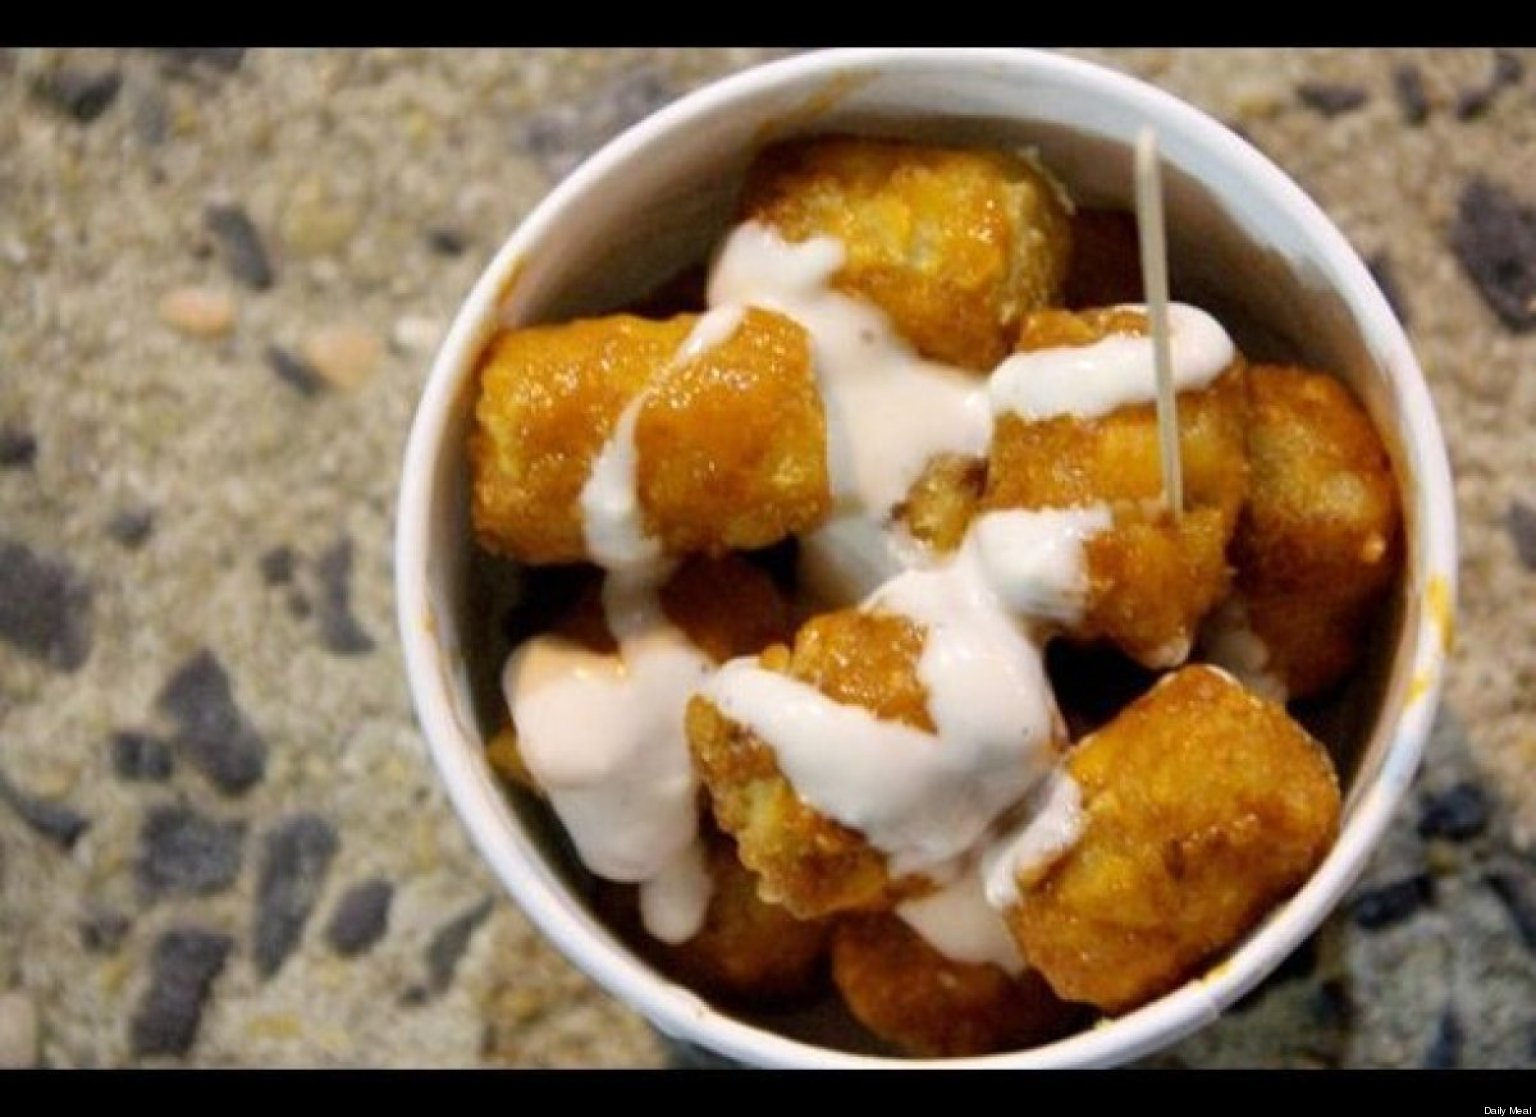 America S Best Tater Tots The Daily Meal Watermelon Wallpaper Rainbow Find Free HD for Desktop [freshlhys.tk]